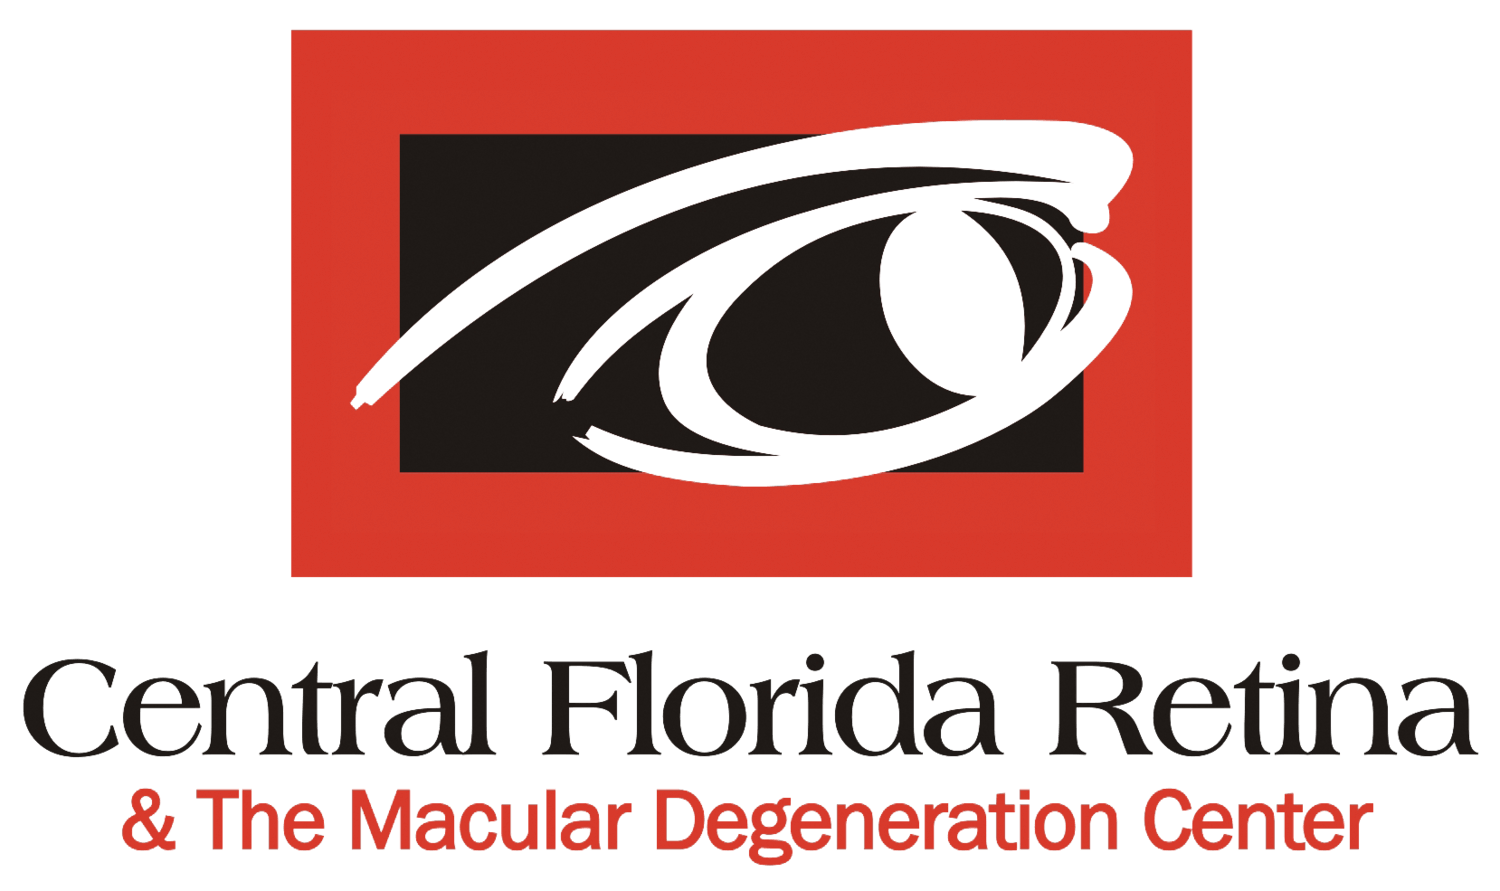 macular degeneration center